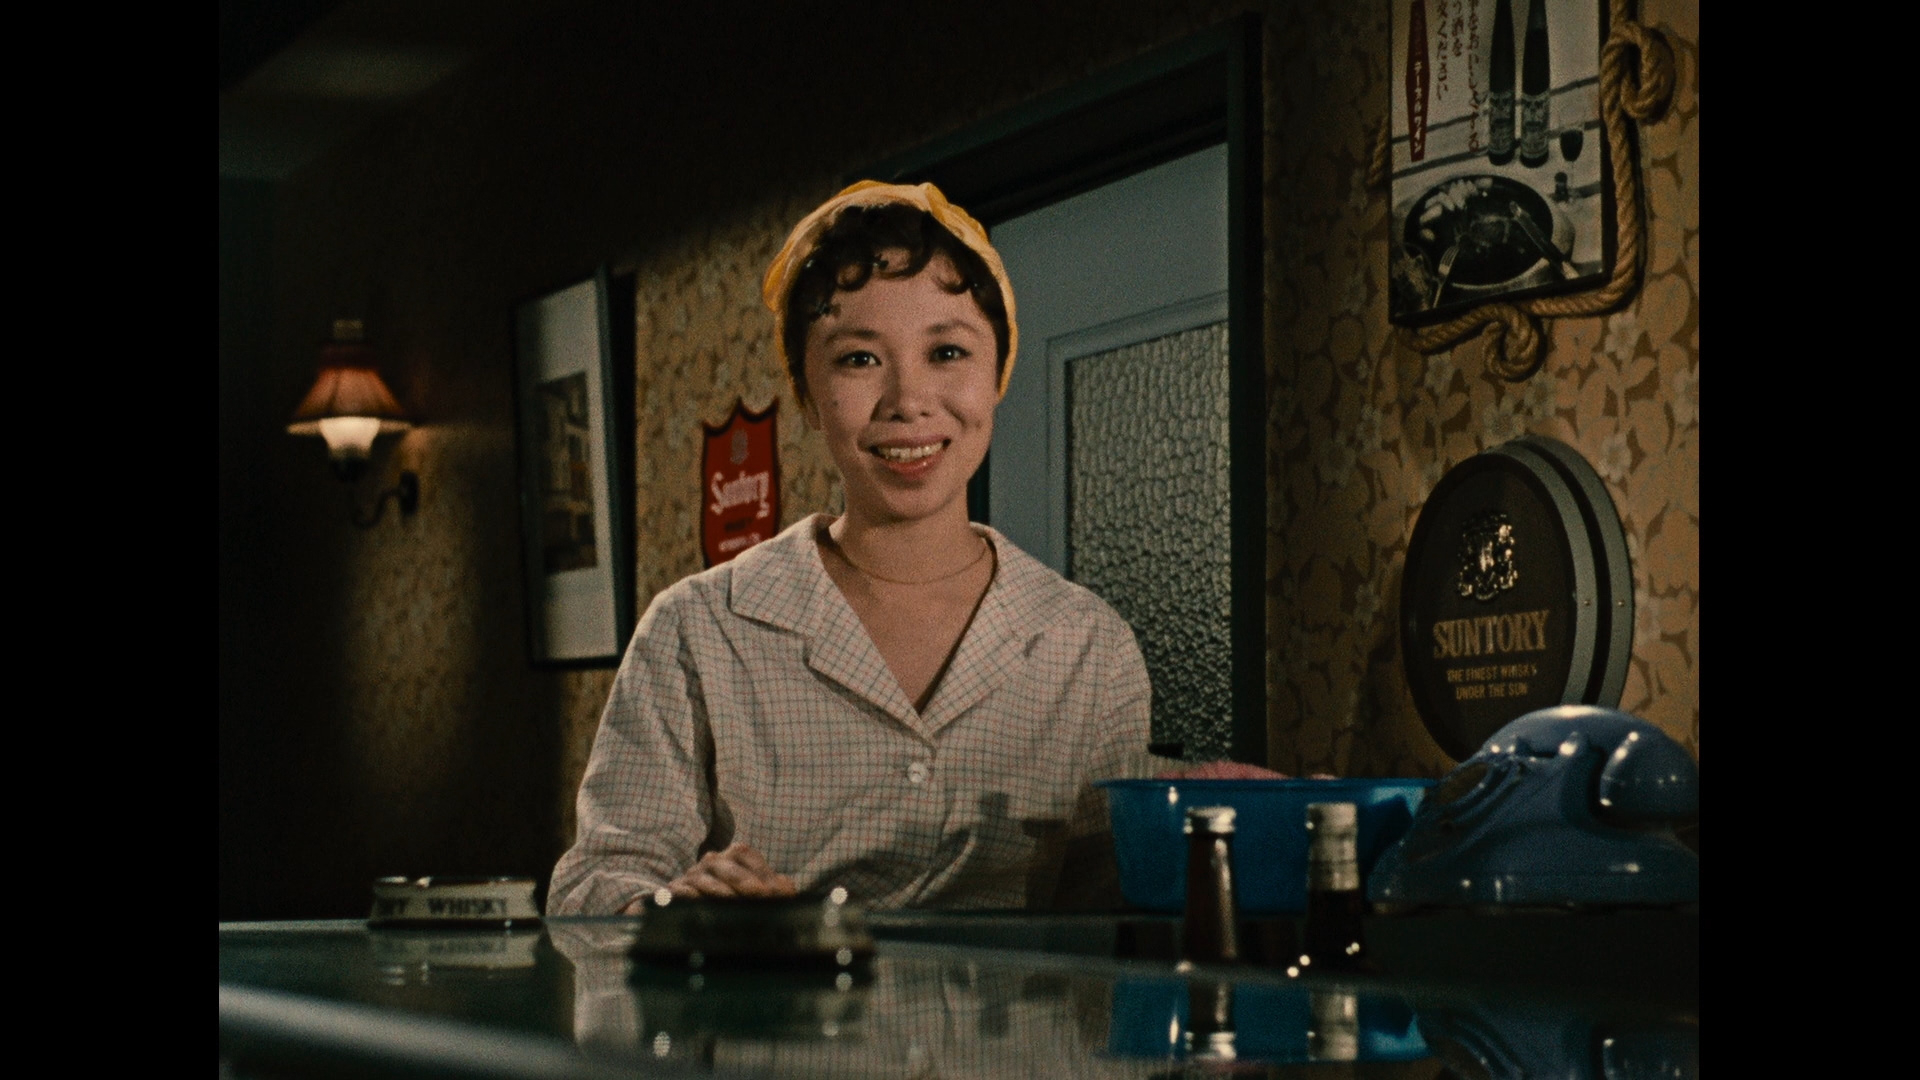 https://i1.wp.com/www.dvdbeaver.com/film5/blu-ray_reviews_65/an_autumn_afternoon_blu-ray_/large/large_autumn_afternoon_02_blu-ray_.jpg